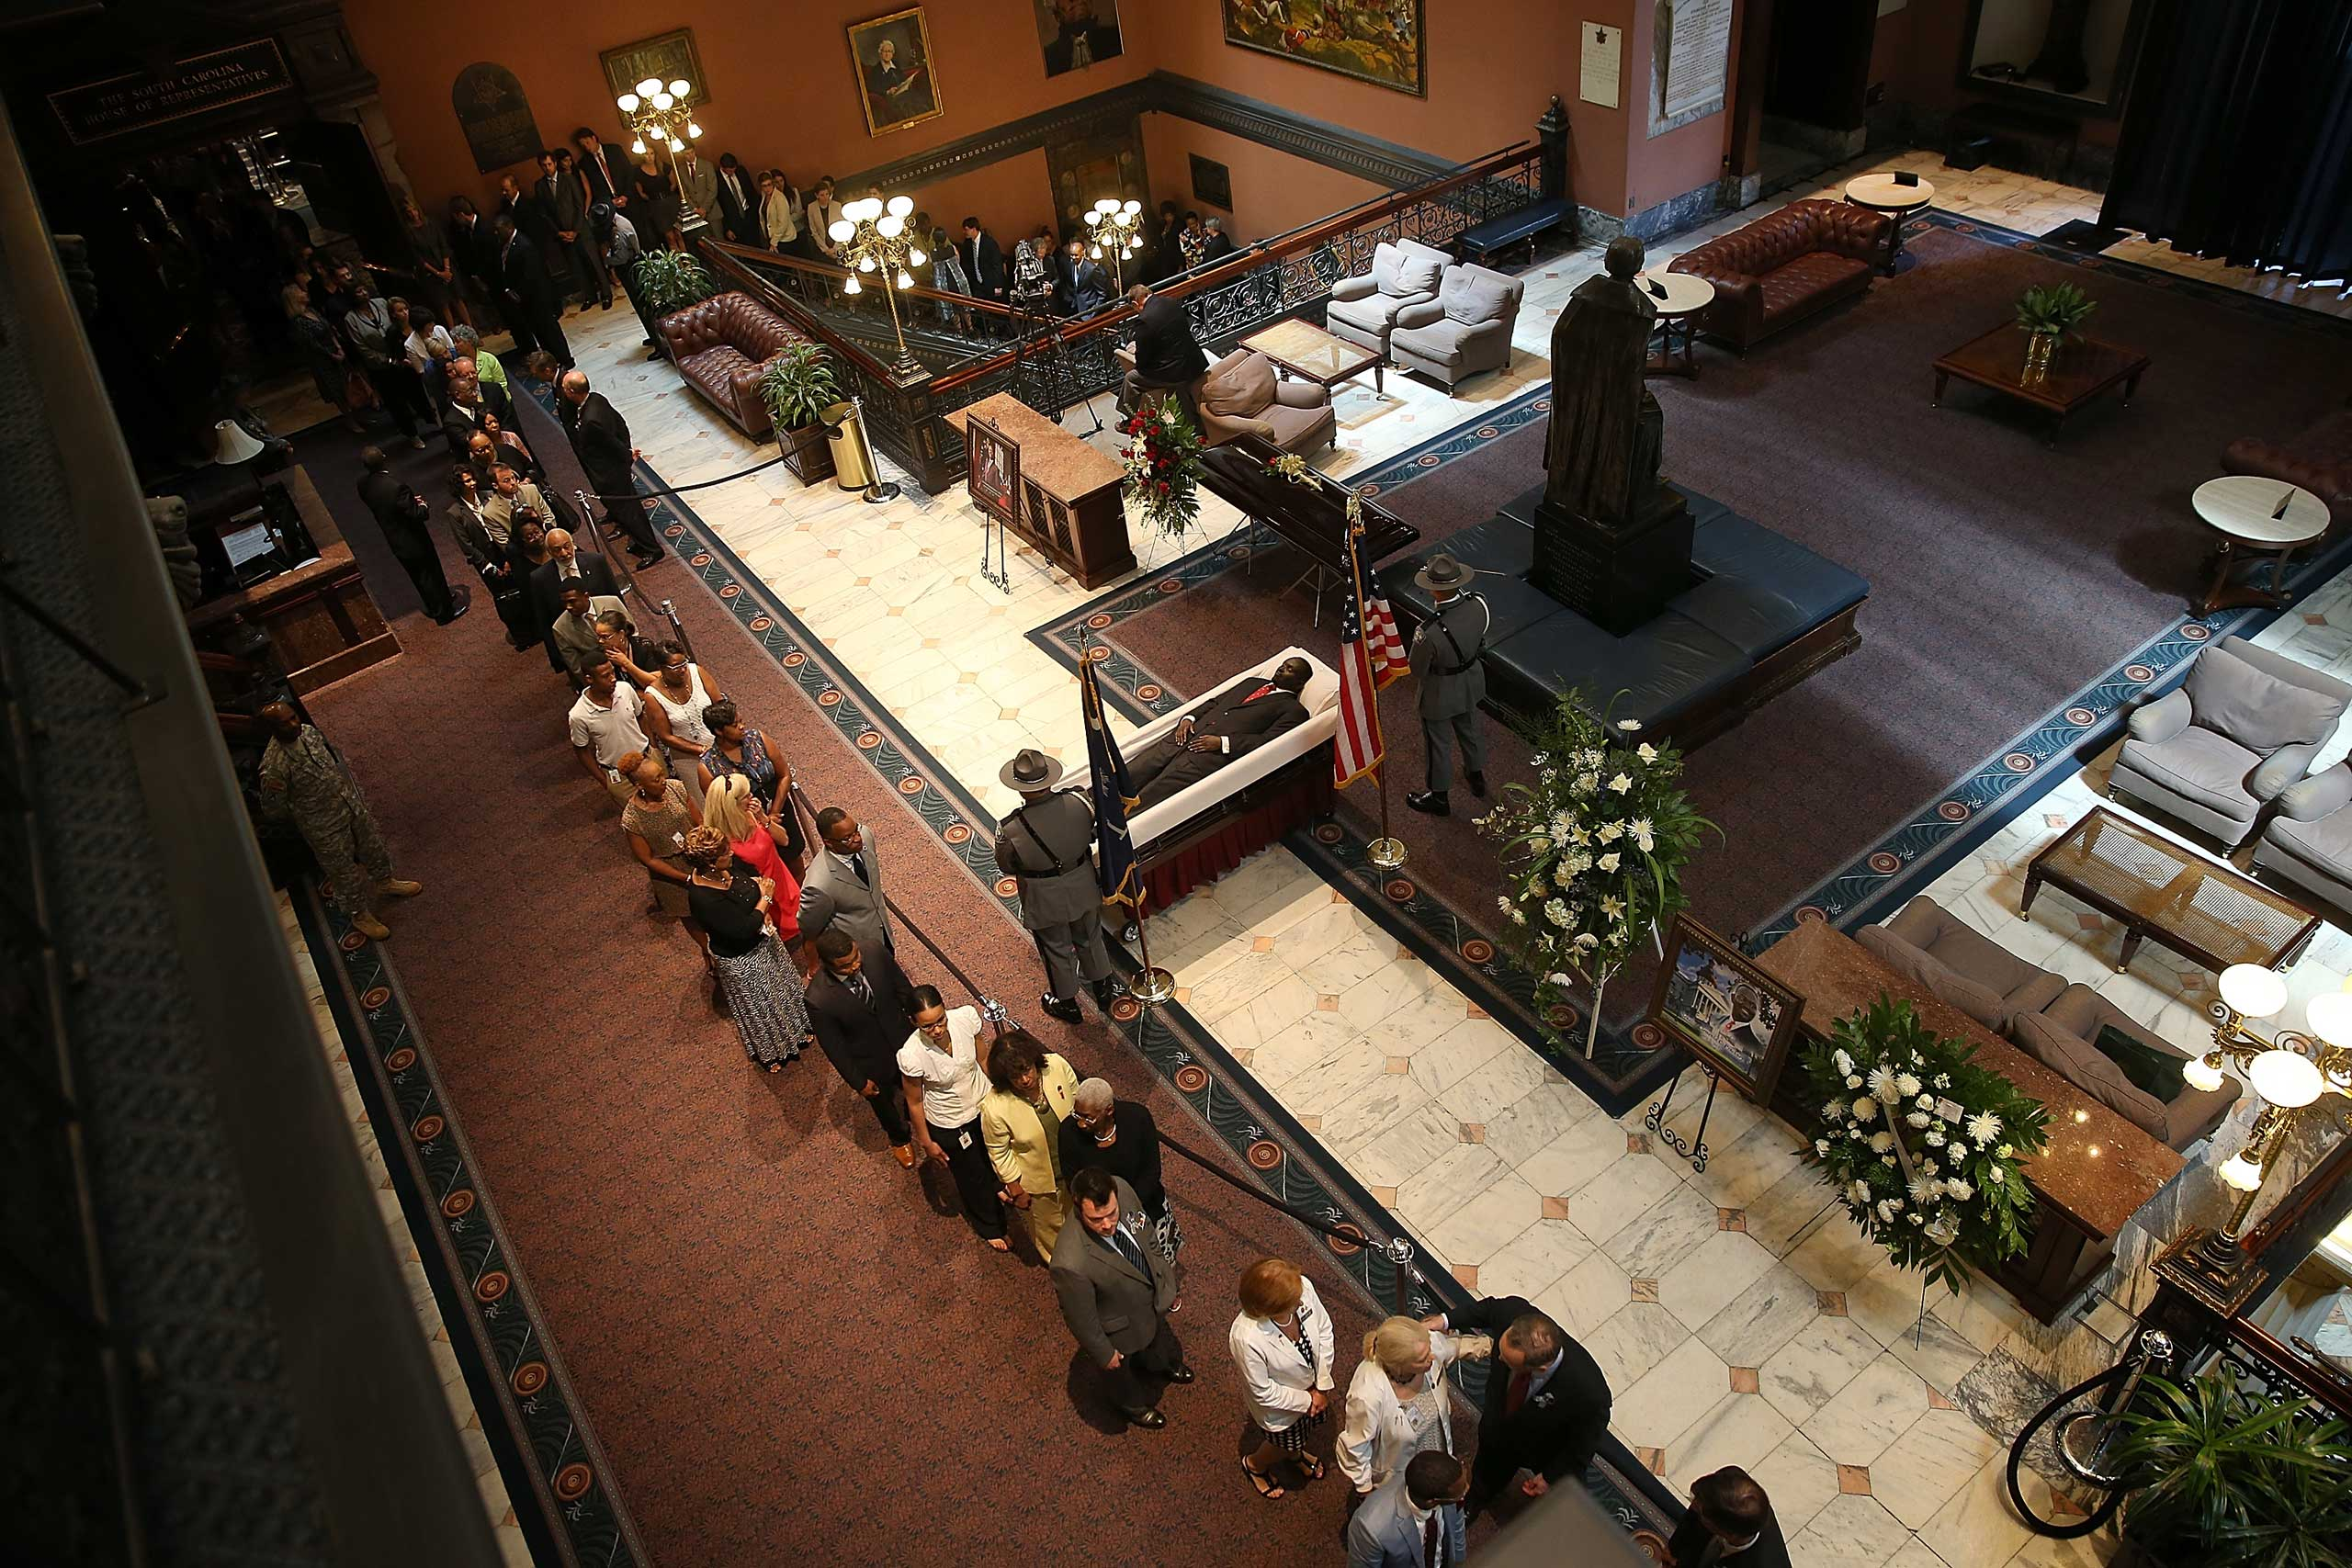 Visitors pay their respects during an open viewing for Rev. Clementa Pinckney at the South Carolina State House in Columbia, S.C. on June 24, 2015.